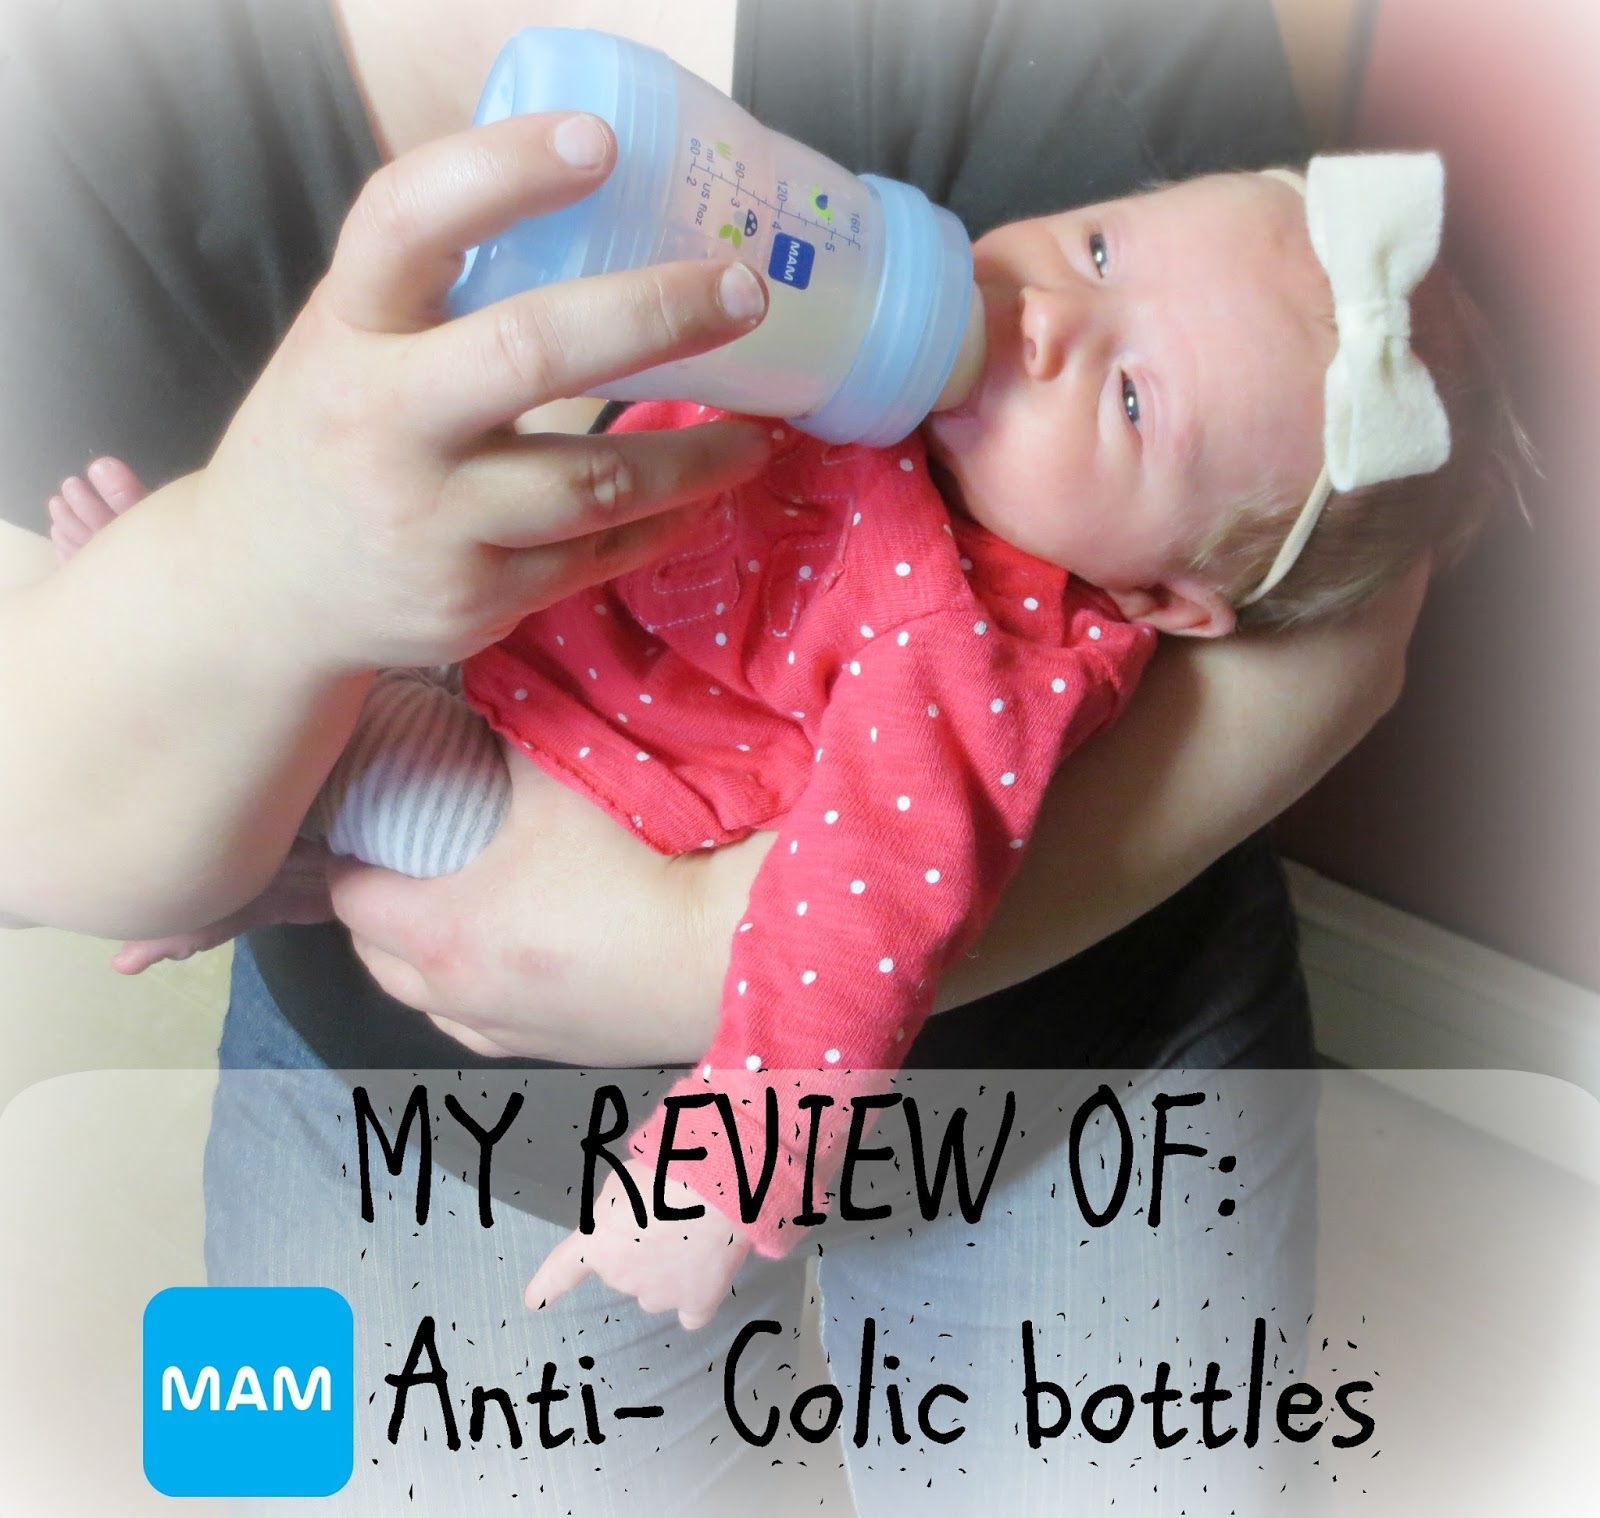 Cut Craft Create Mam Anti Colic Bottles Review Buy 1 Get Free Bottle Blue However All Opinions Are My Own And I Actually Owned The Vented Base Prior To This So Really Do Use Trust Them